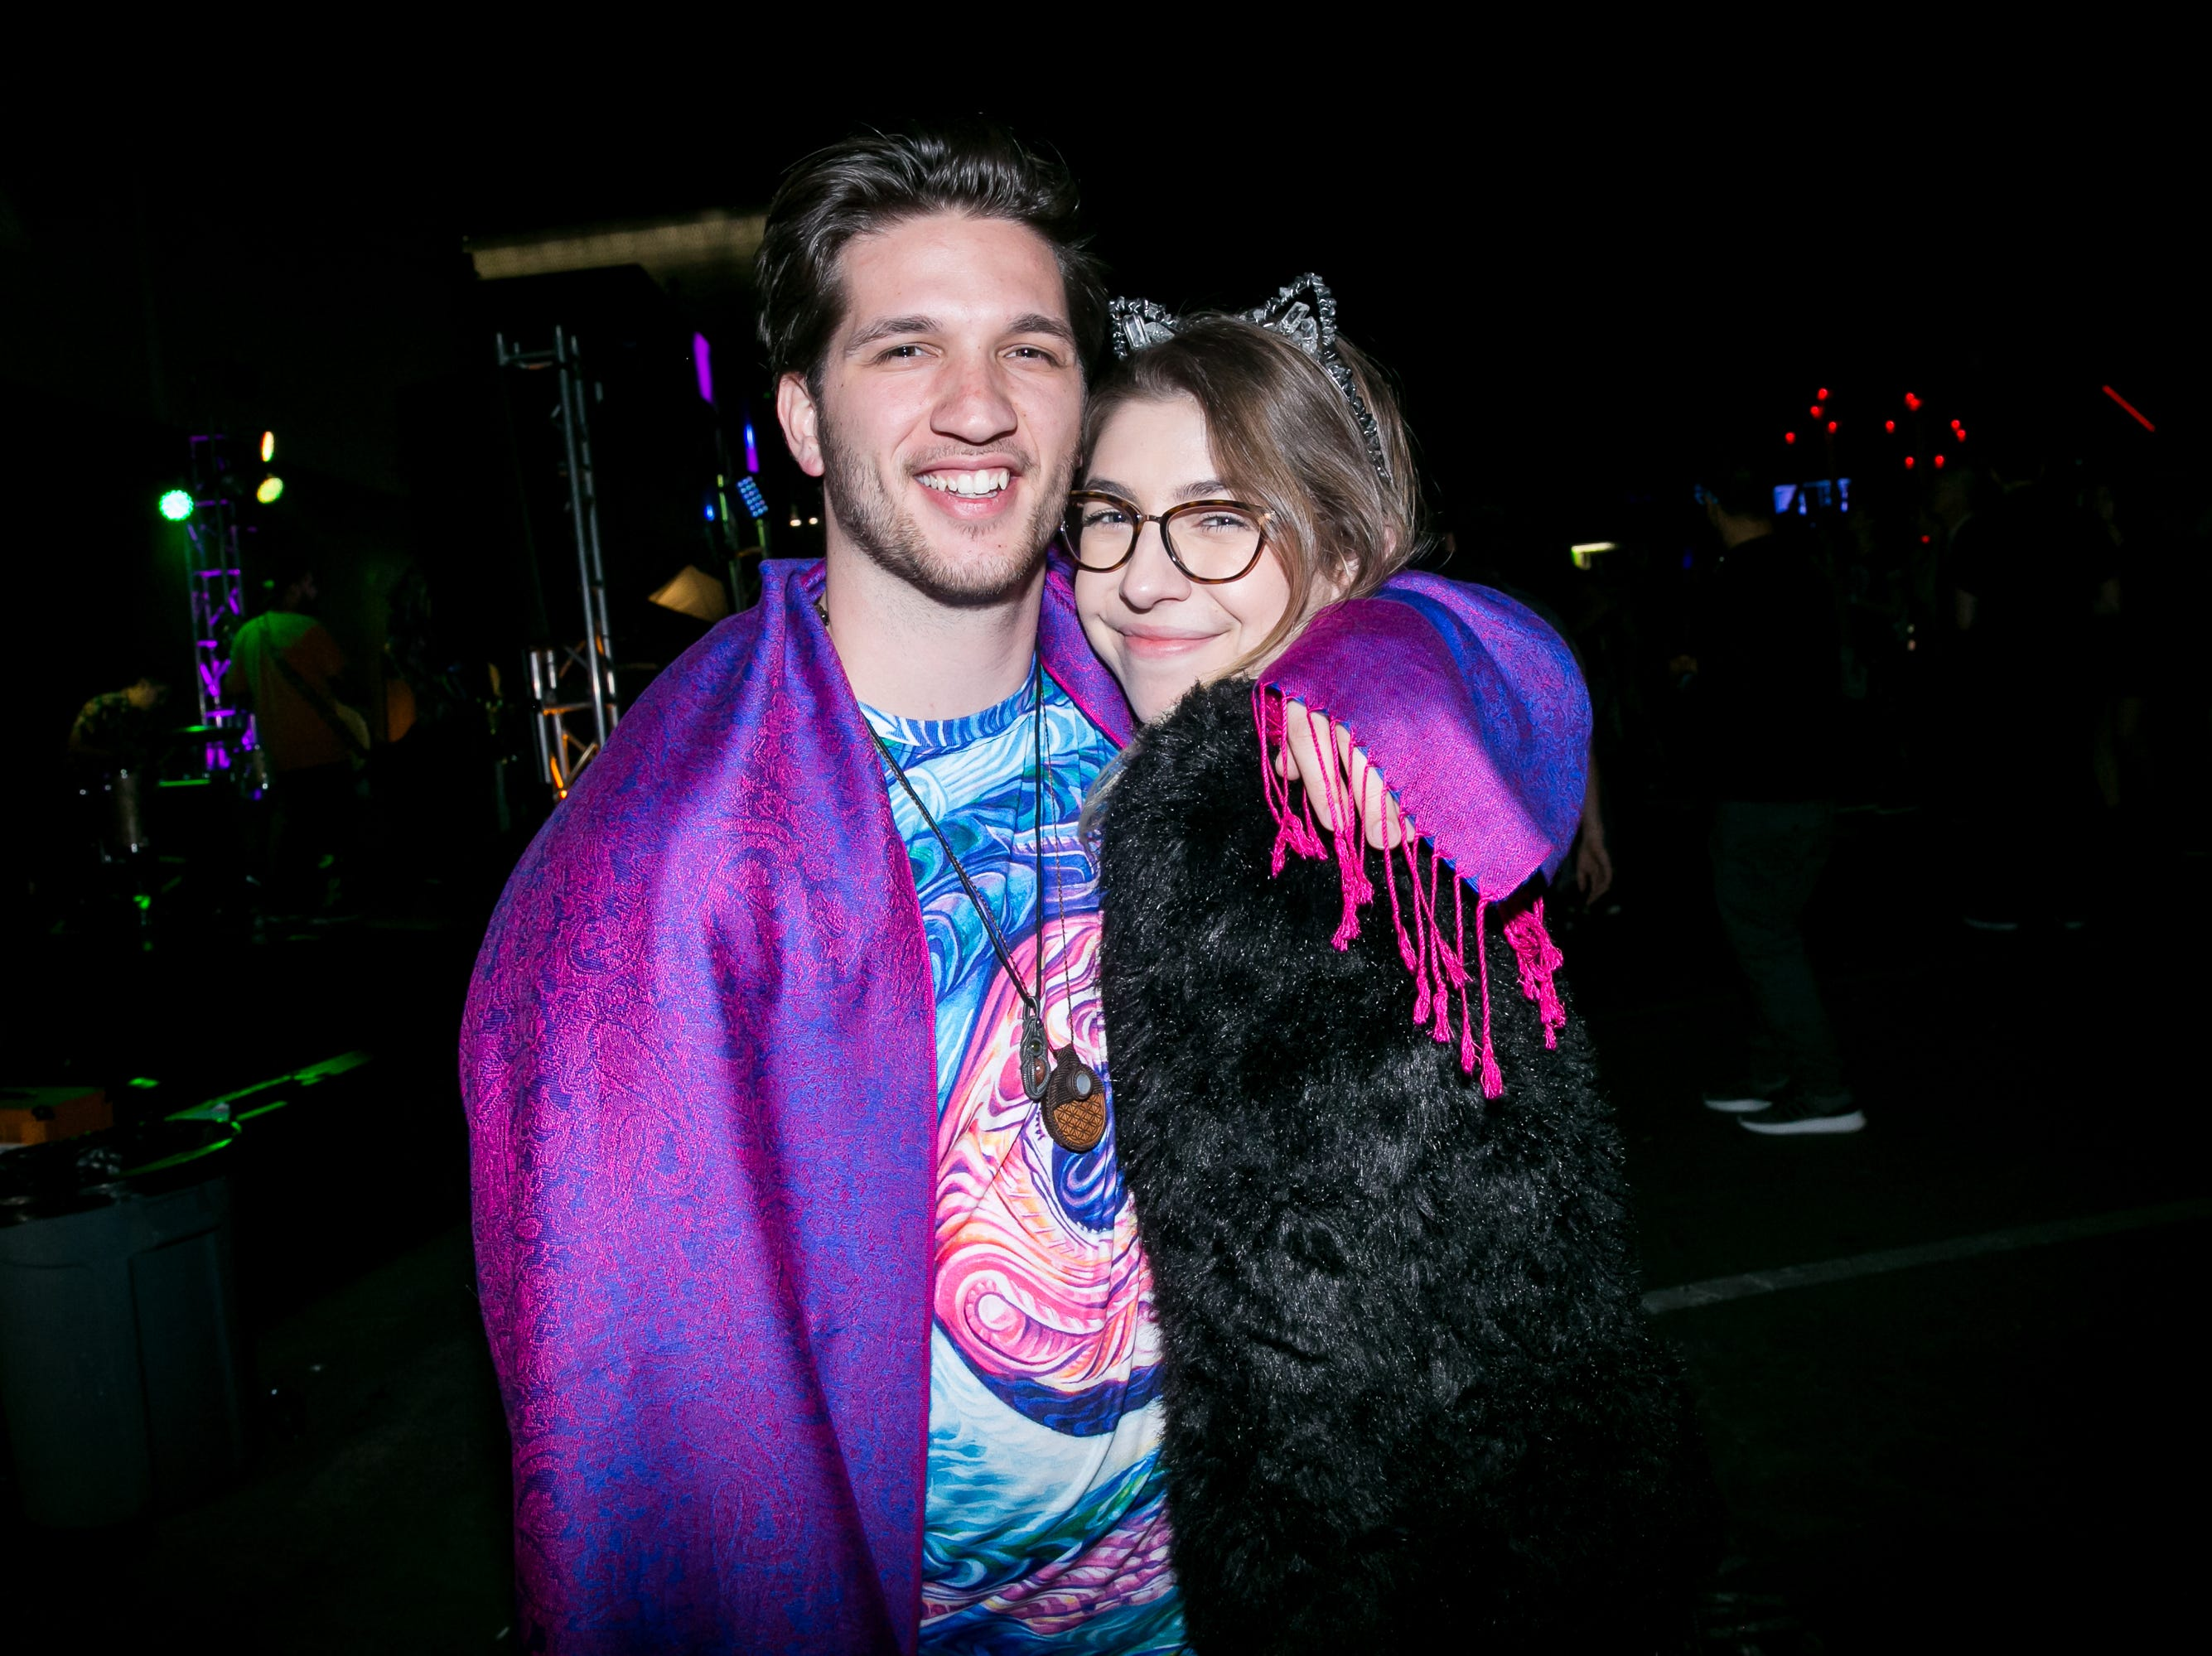 These two looked groovy at the Full Moon Festival at the Pressroom on March 23, 2019.